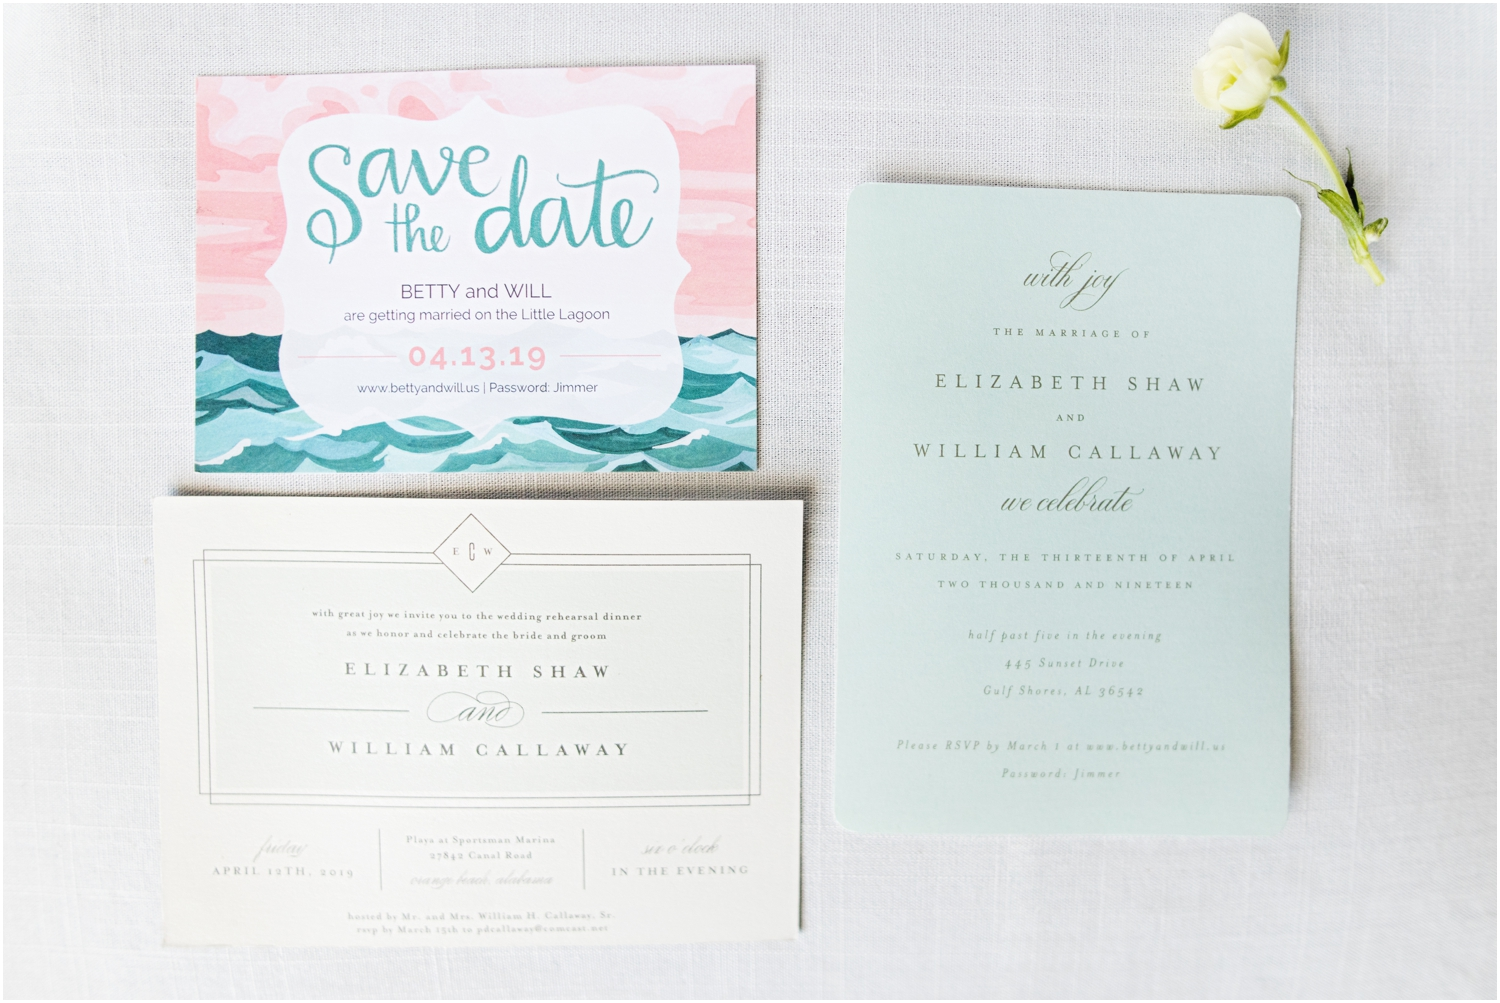 Gulf Shores Orange Beach Alabama Family Home on the Water Wedding Photographer invitation suite details